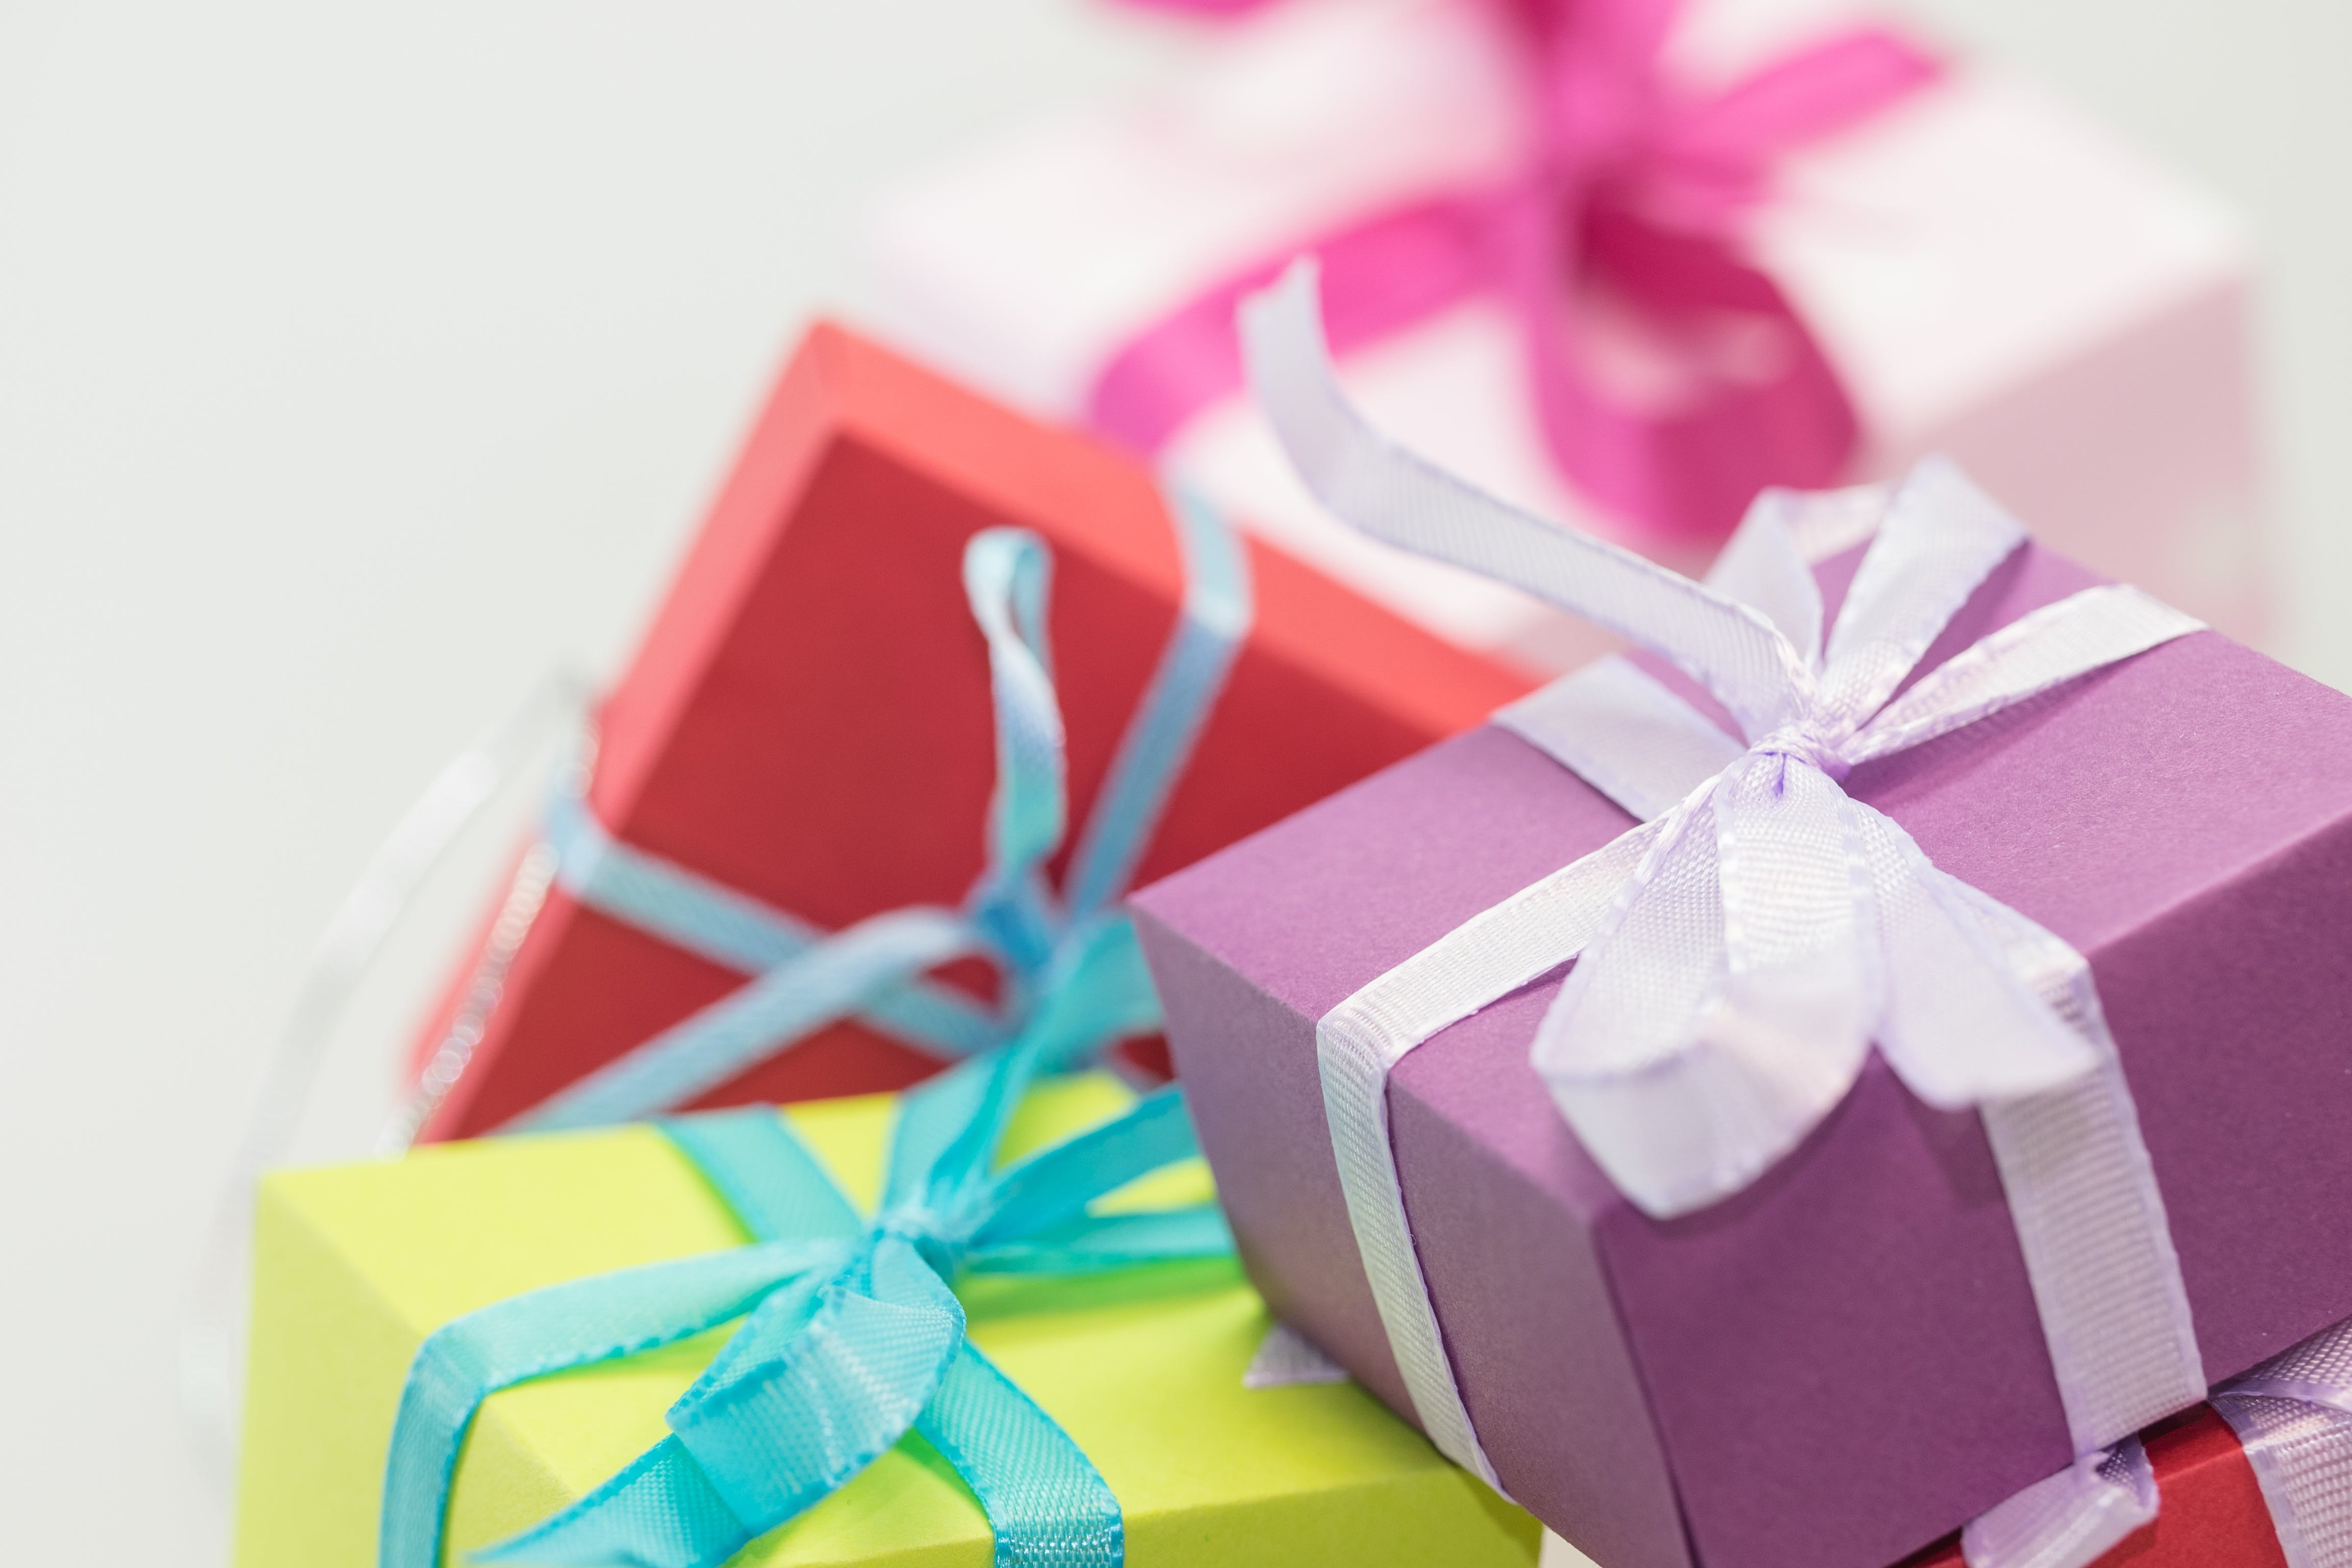 Selective Focus Photography of Gift Boxes